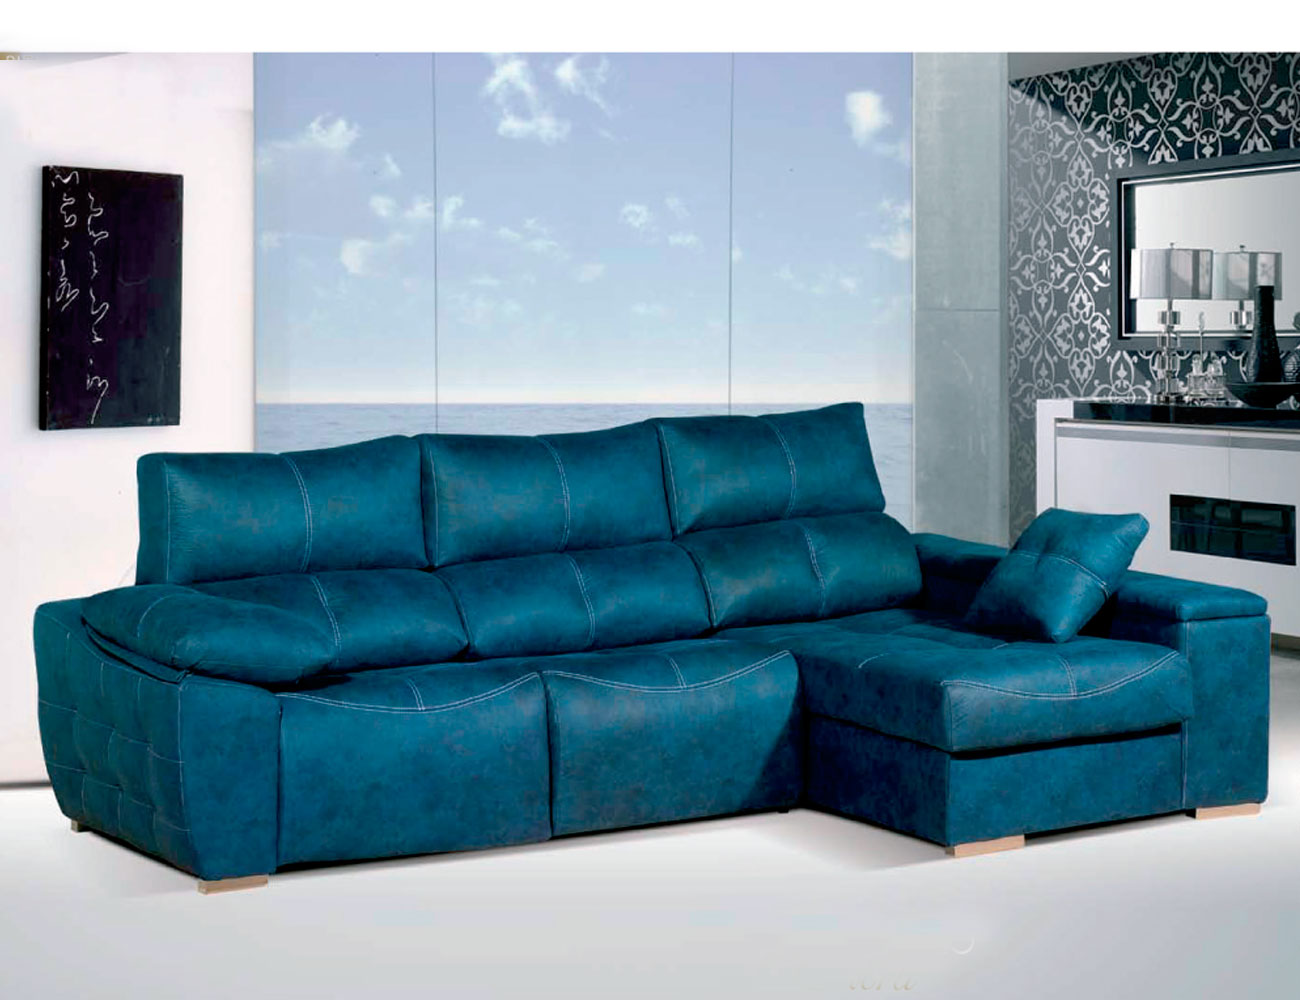 Sofa chaiselongue relax 2 motores anti manchas turquesa39